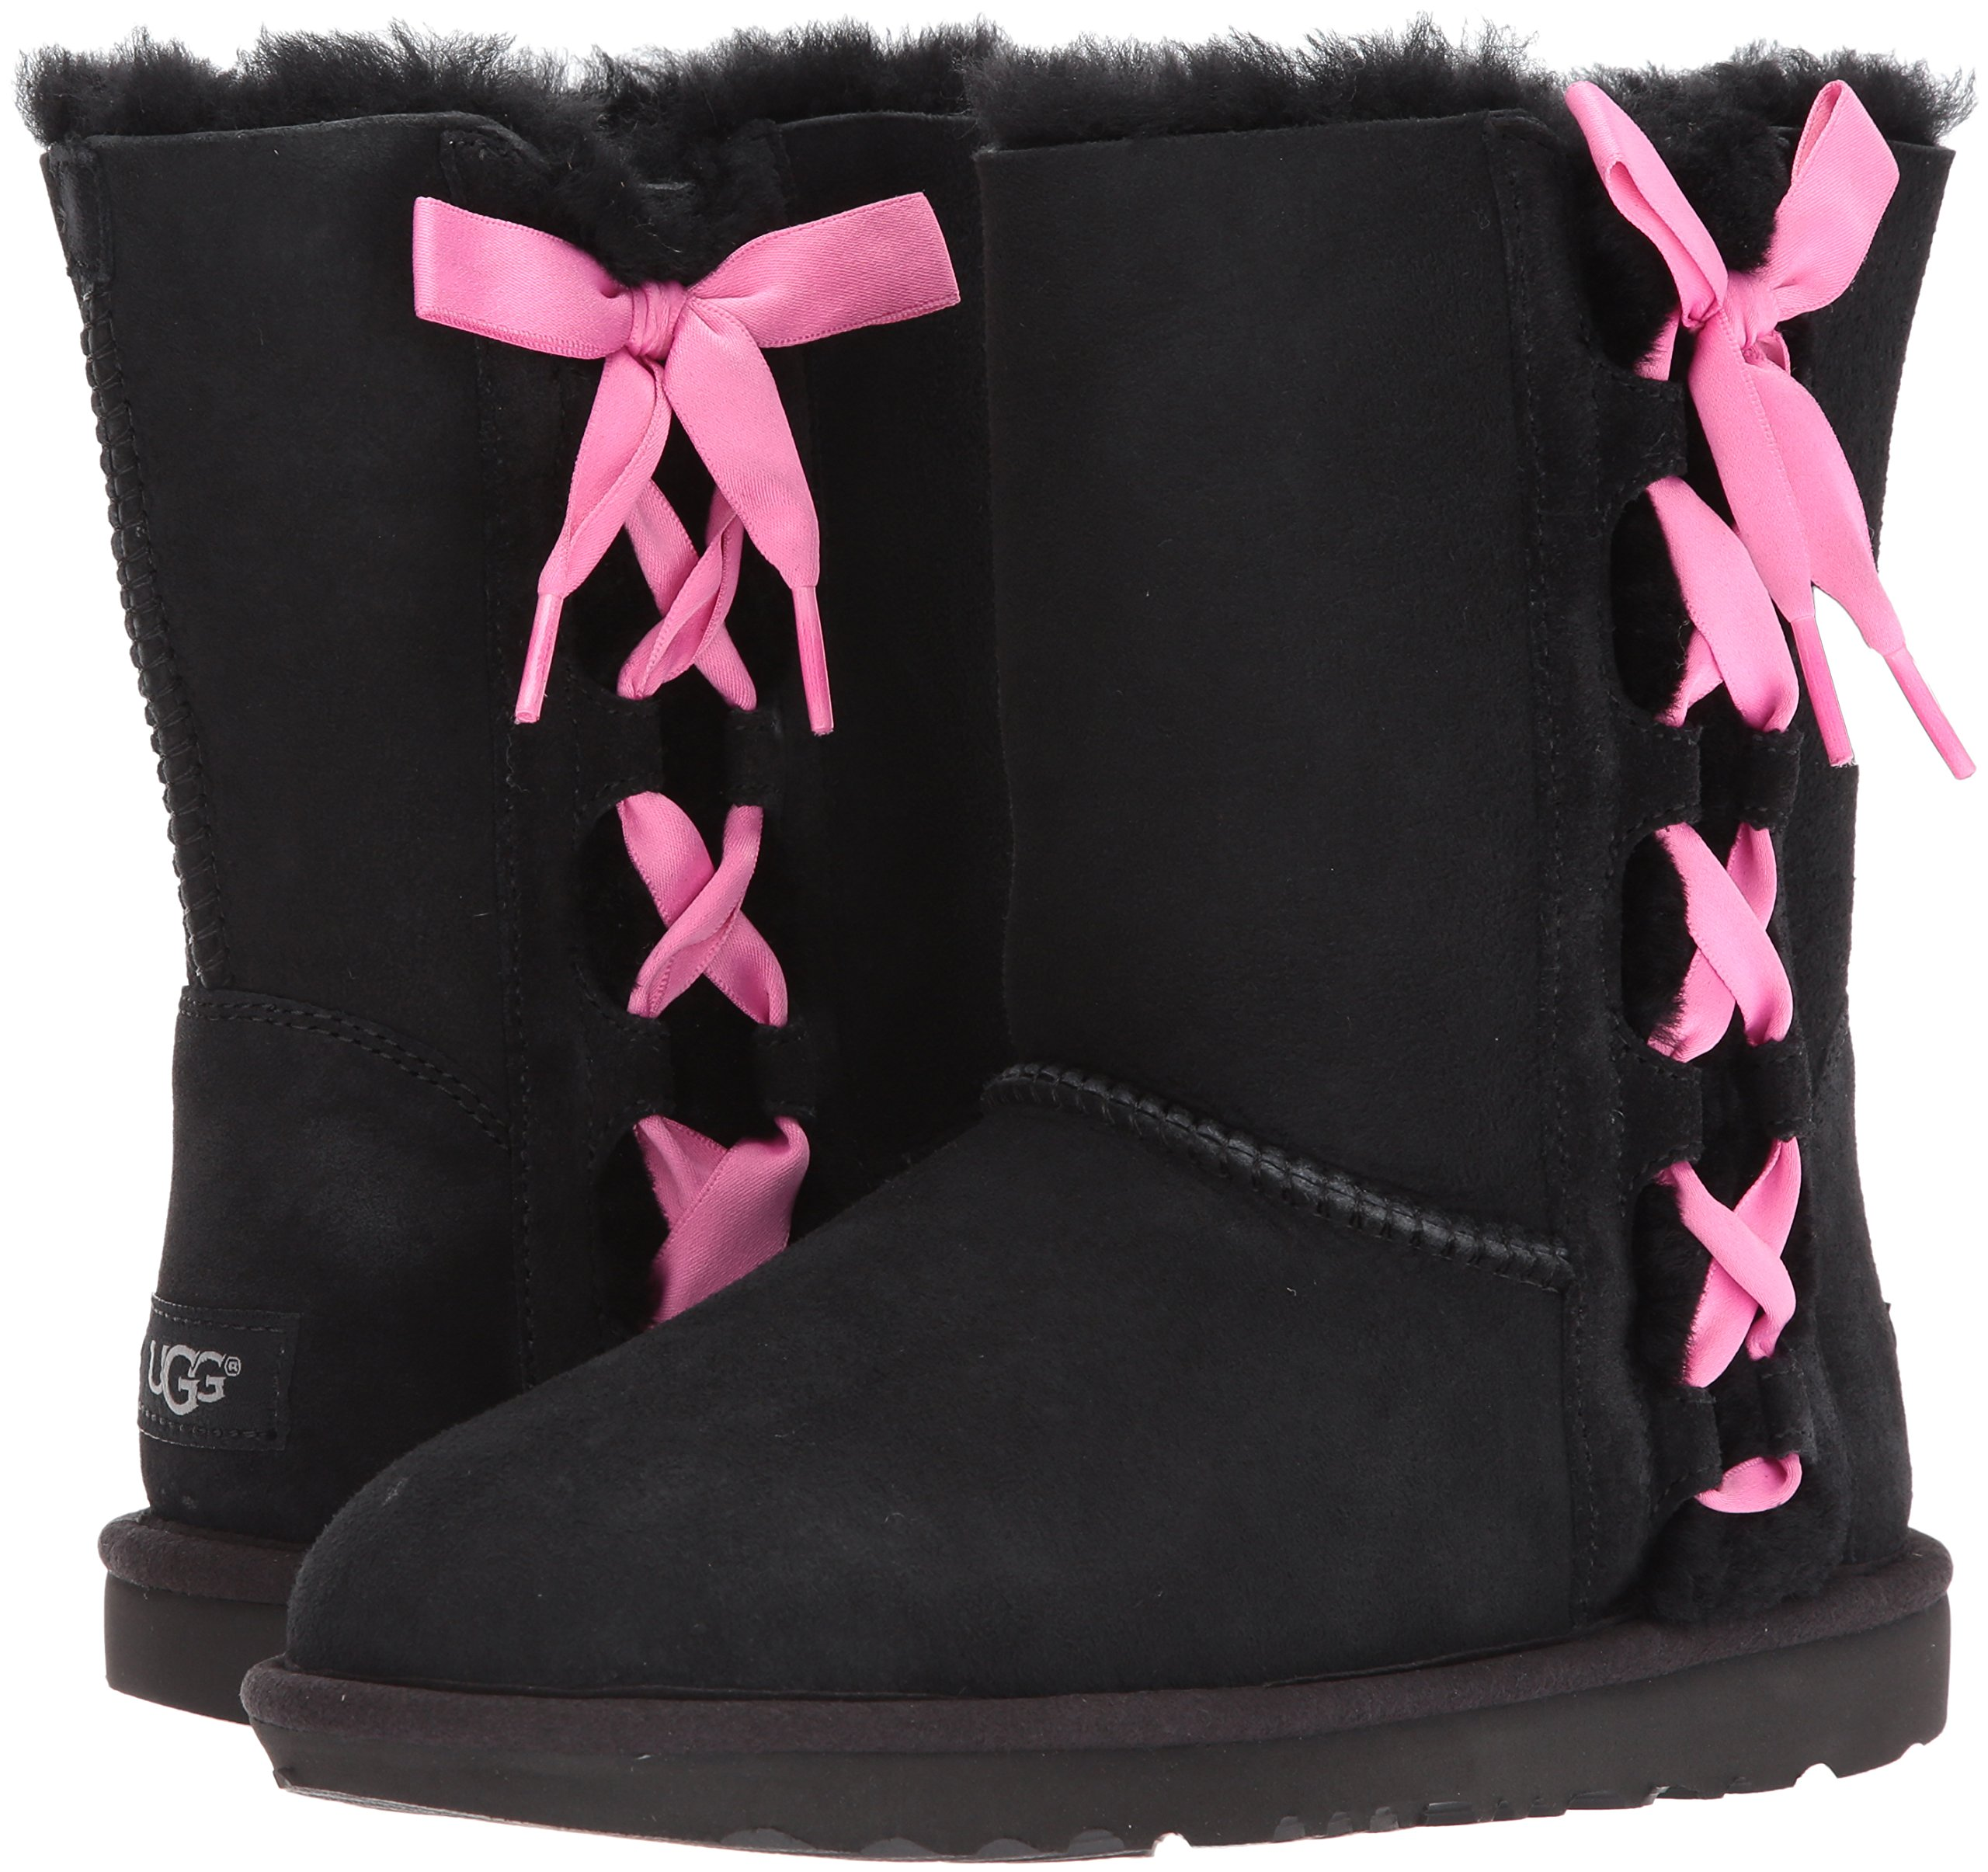 UGG Girls K Pala Pull-on Boot, Black, 1 M US Little Kid by UGG (Image #6)